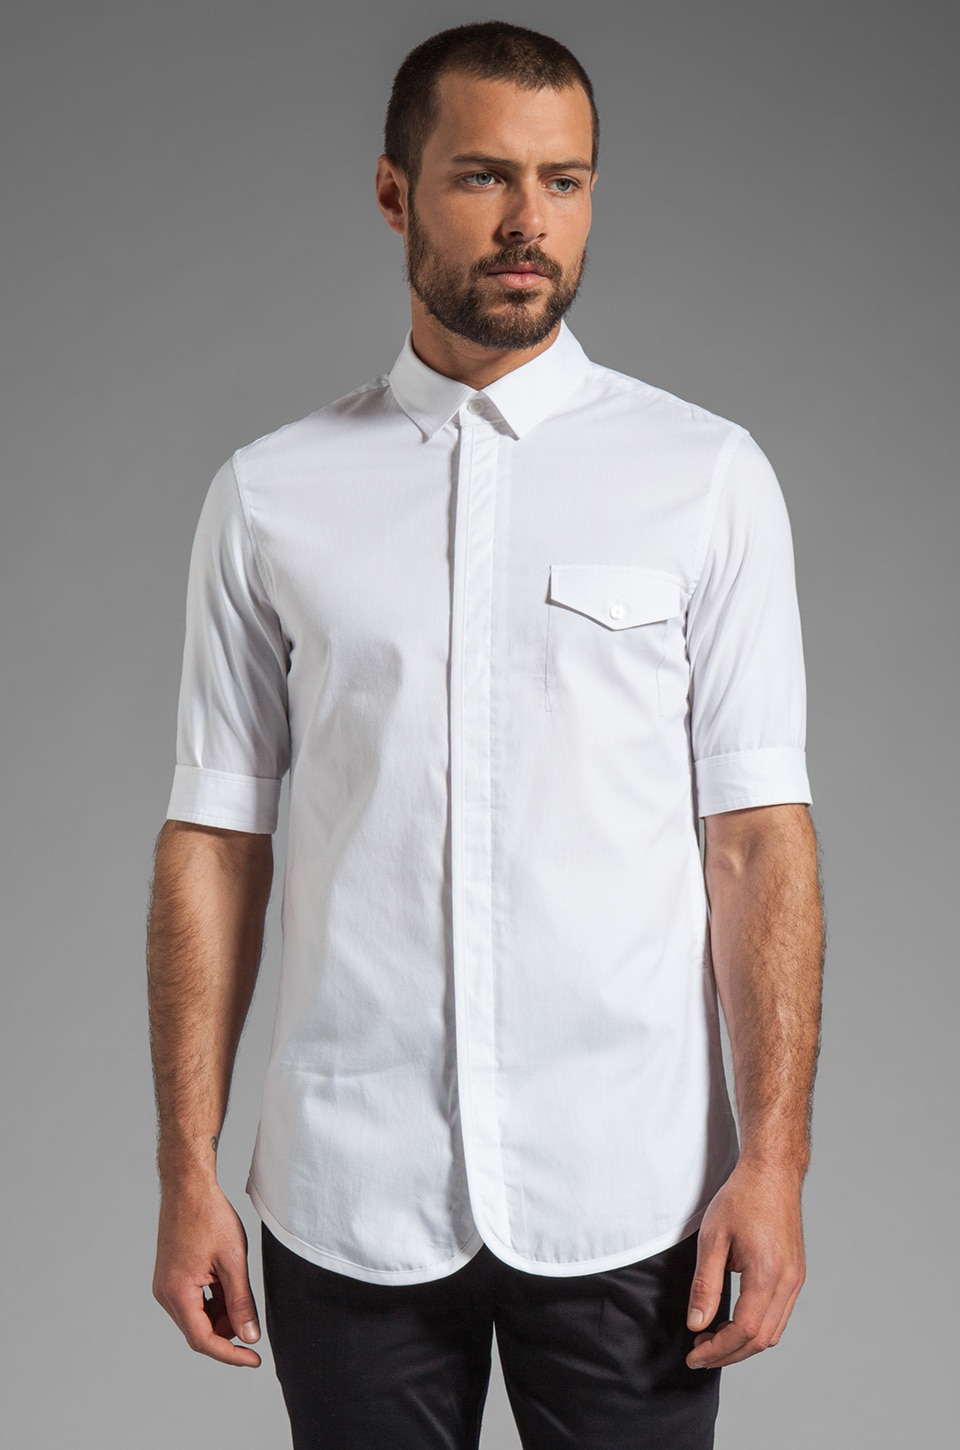 Kai-aakmann Pocket Shirt in White